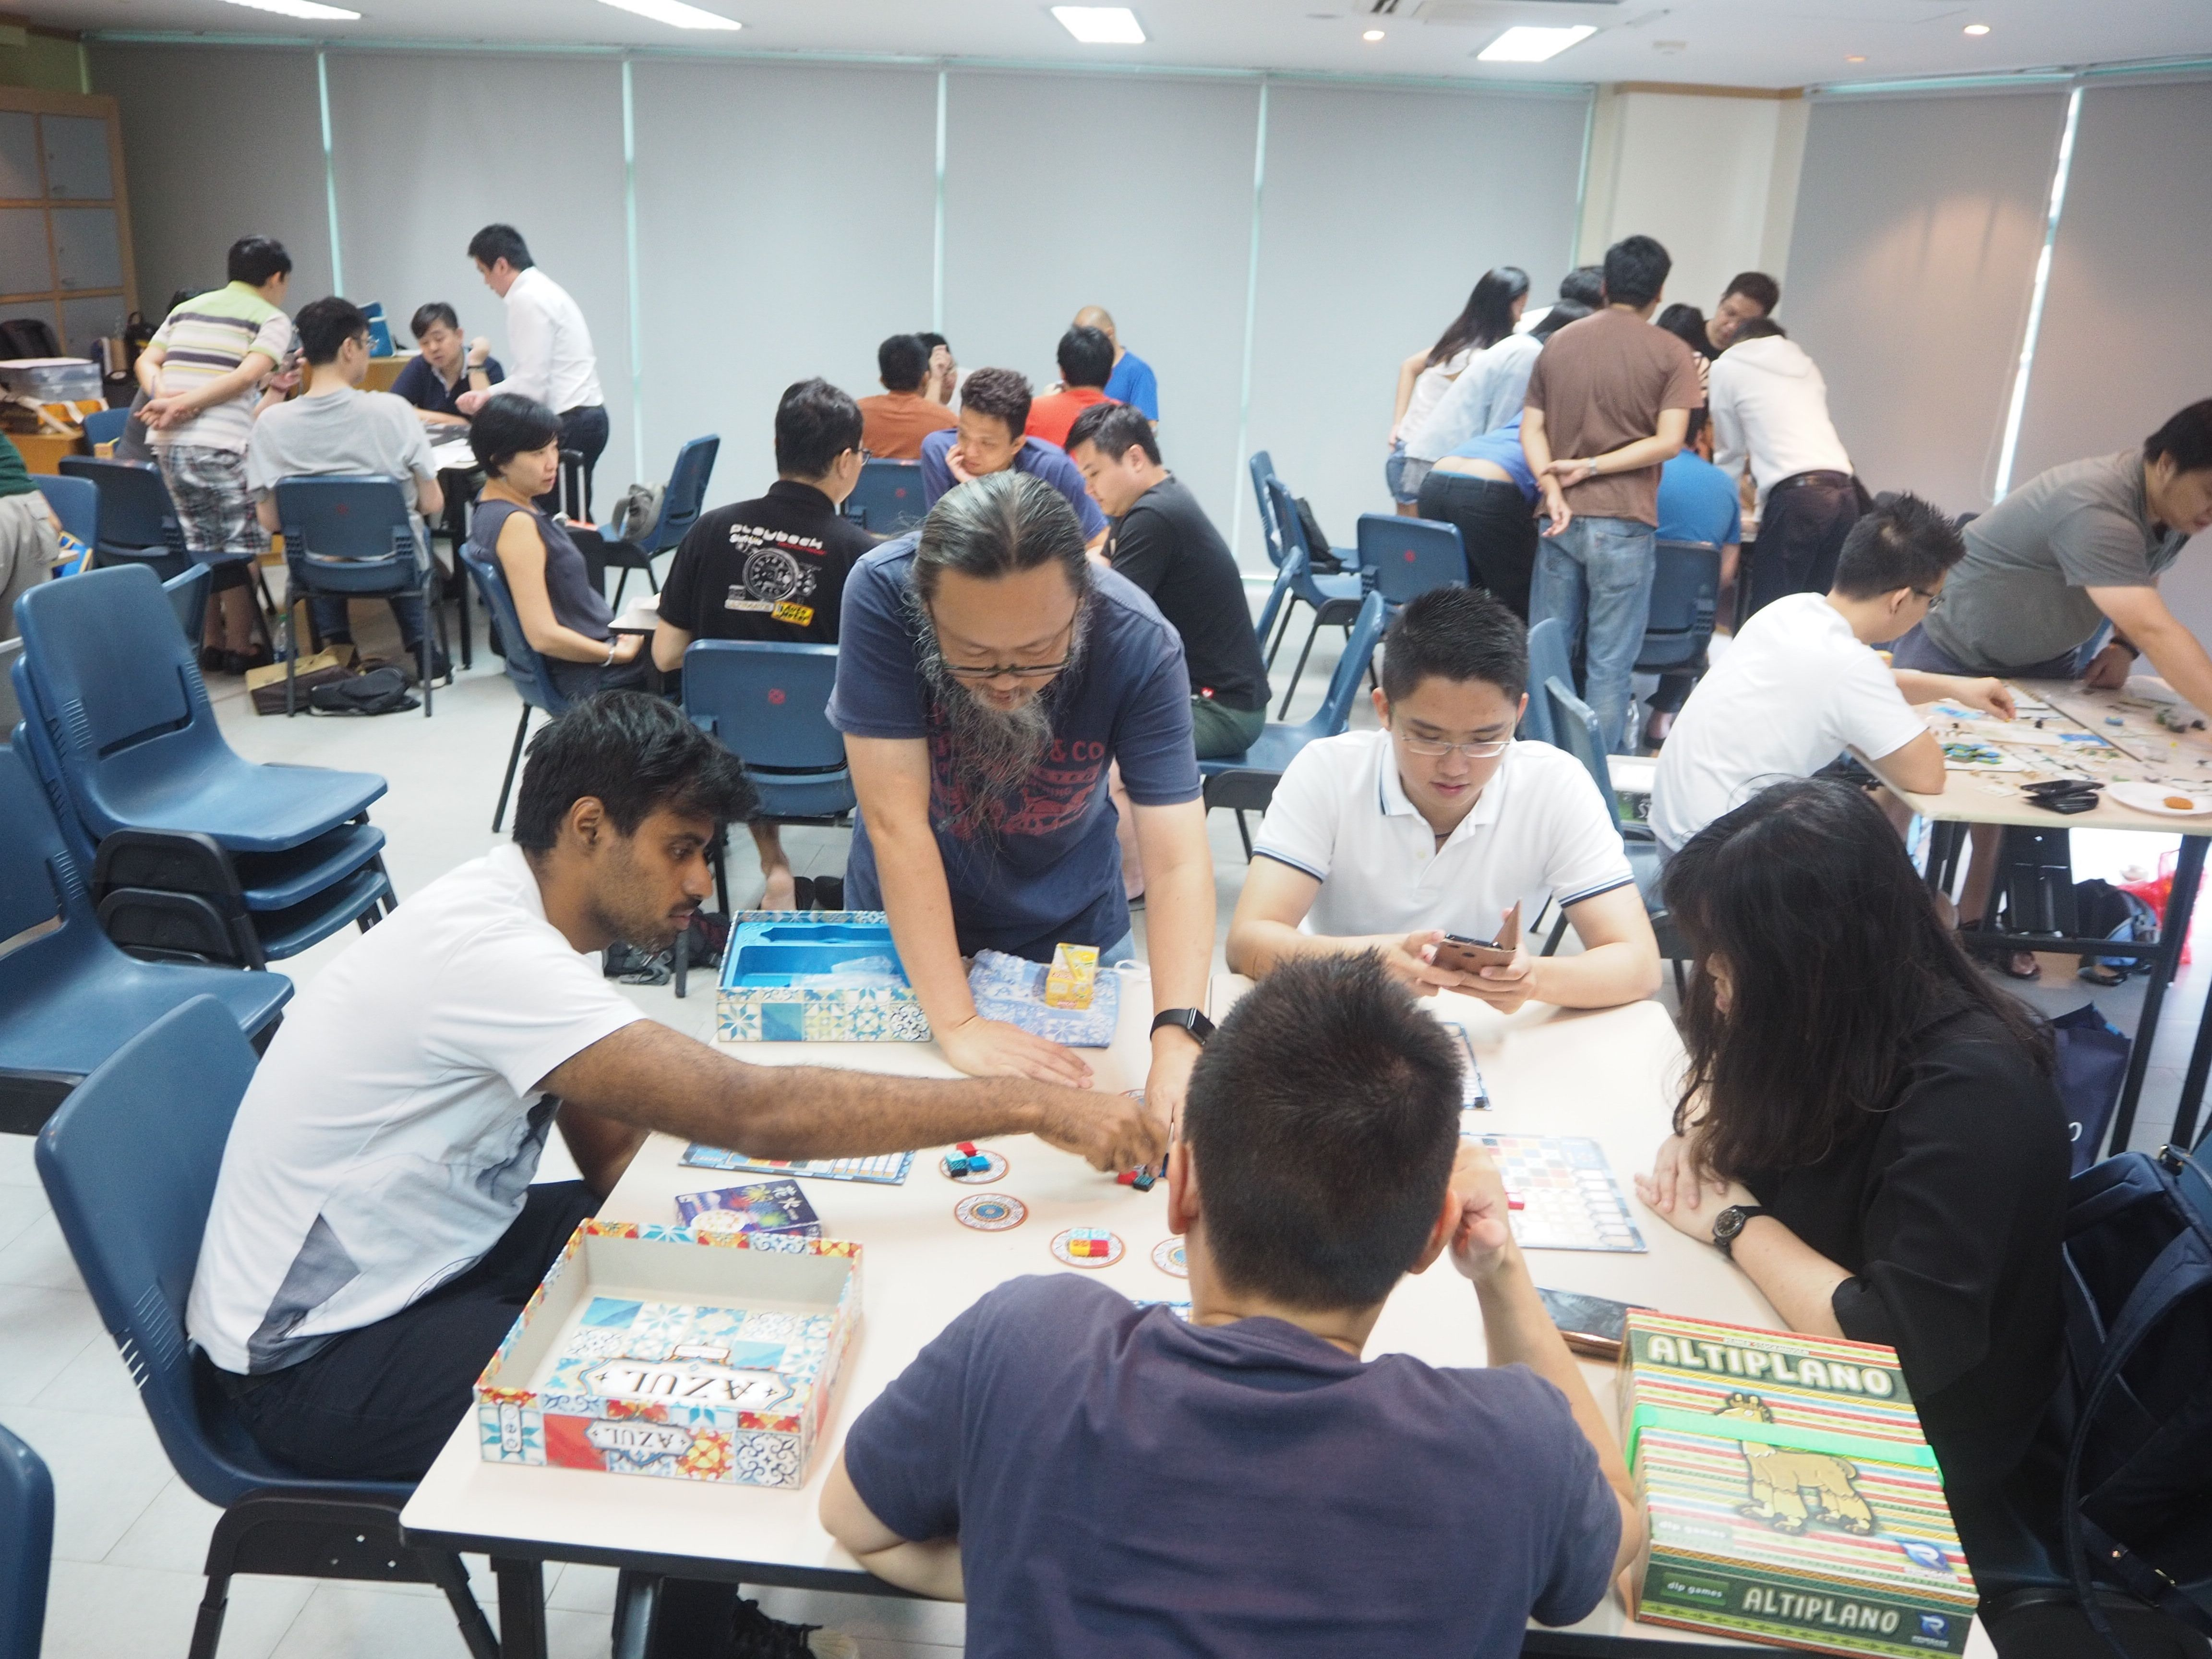 The Singapore Boardgames Meetup